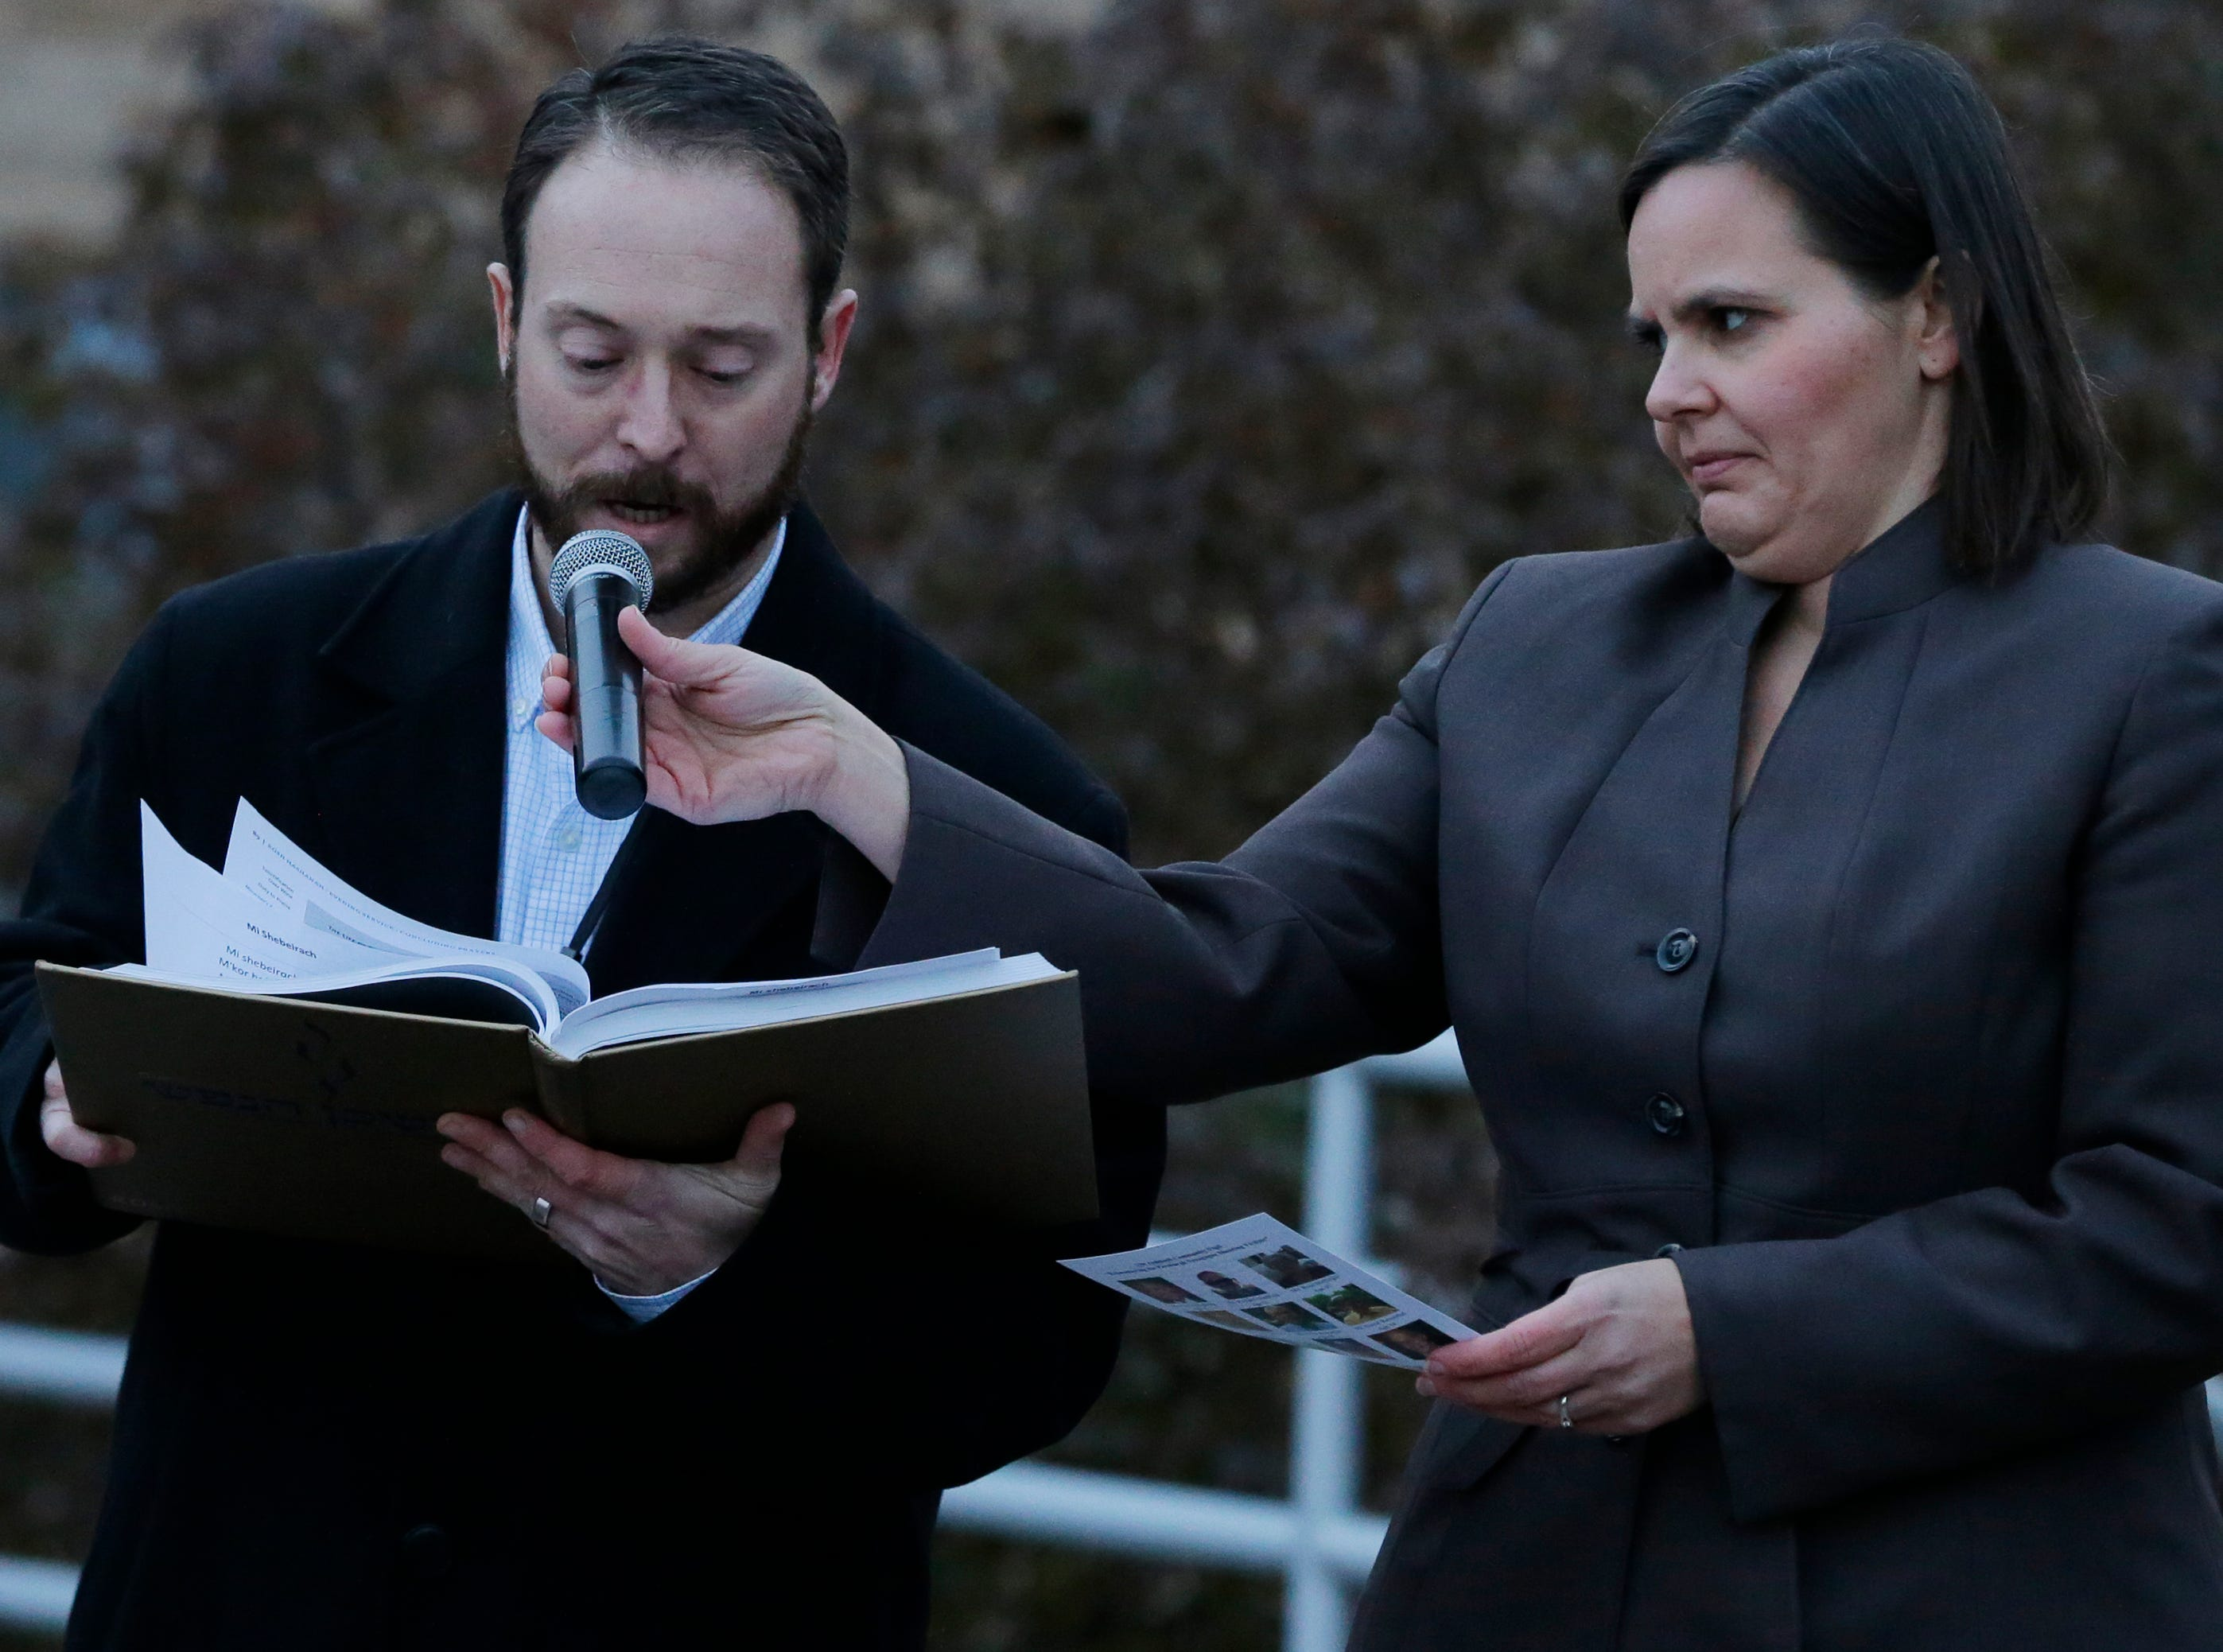 Andy Solomon  of Congregation B'nai Israel gives the blessing during the vigil.  A candlelight vigil was held on the upper deck of UW-Oshkosh's Albee Hall Thursday, November 1, 2018, to come together and remember those killed at the Tree of Life Congregation in the Squirrel Hill neighborhood of Pittsburgh, Pa. Eleven people were killed and six injured in the attack.